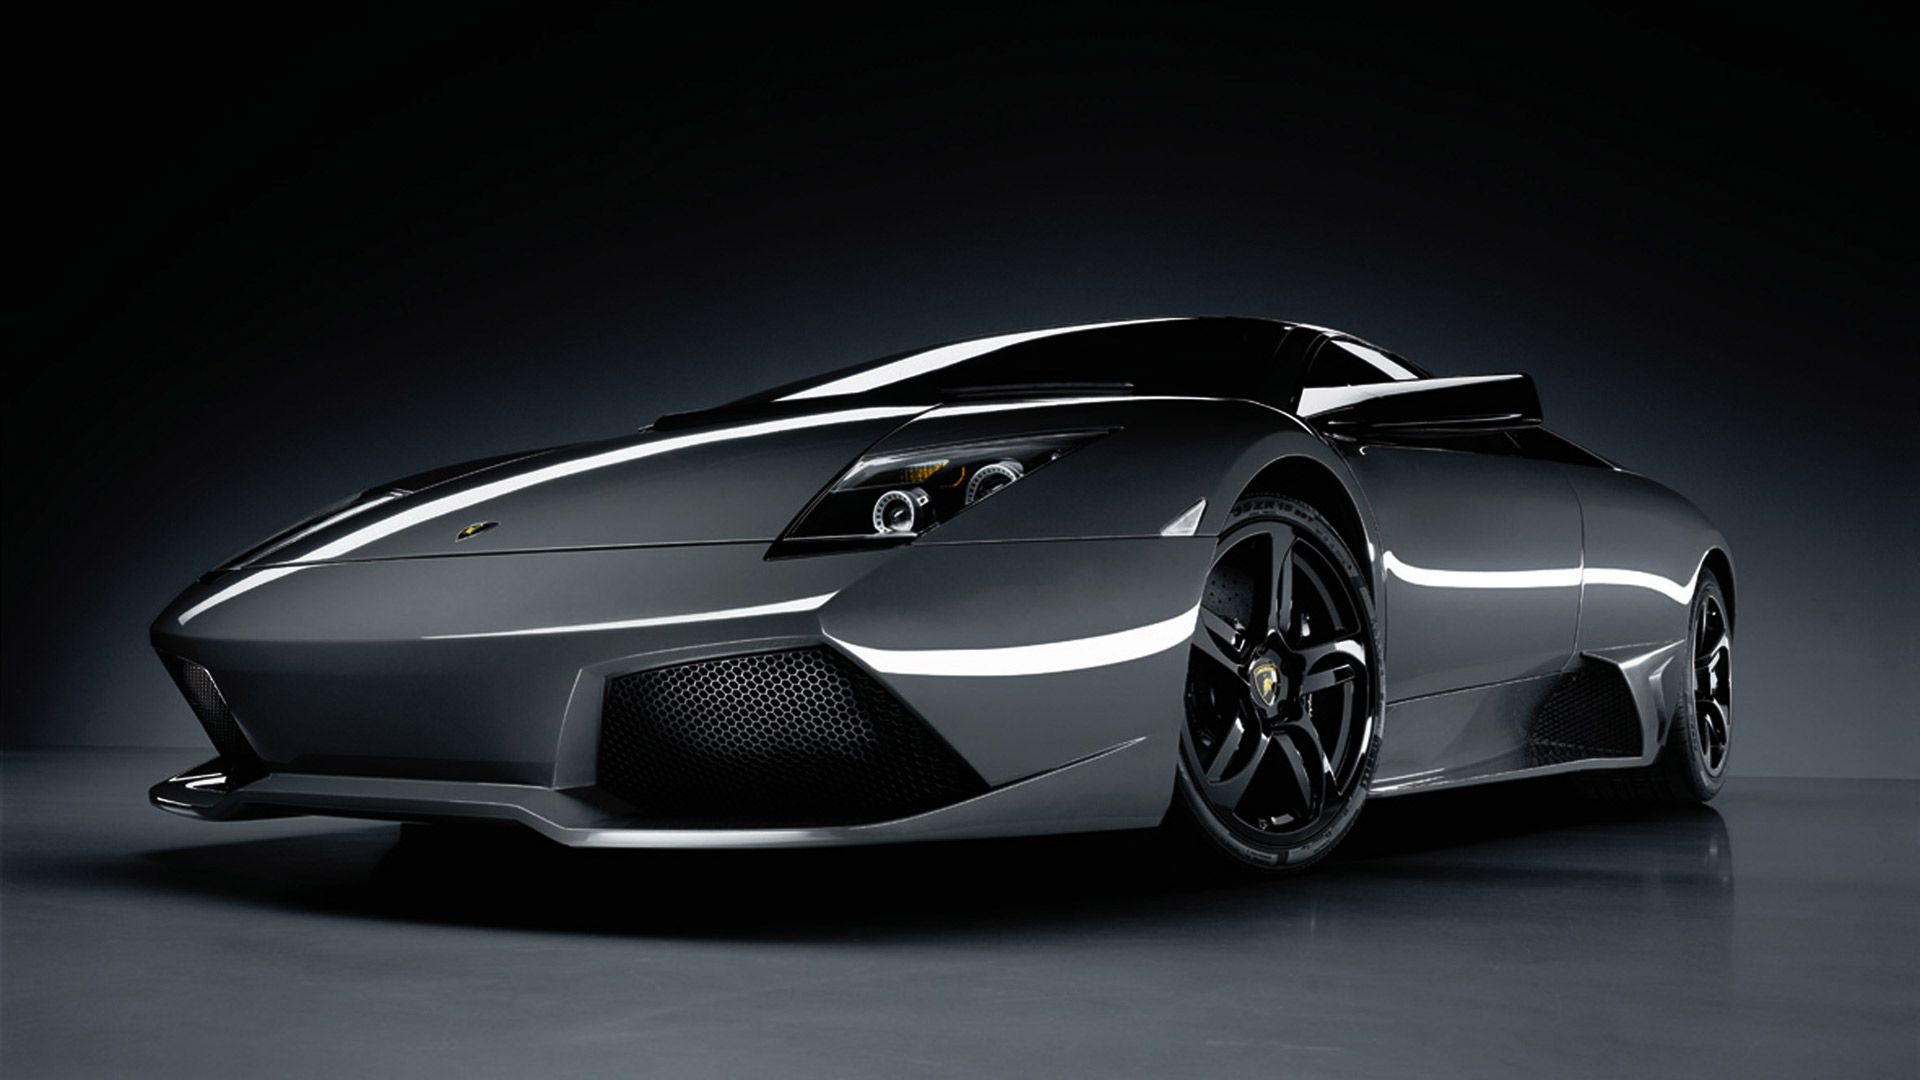 mail centenario for roadster lamborghini reveals pin daily extreme insurance online